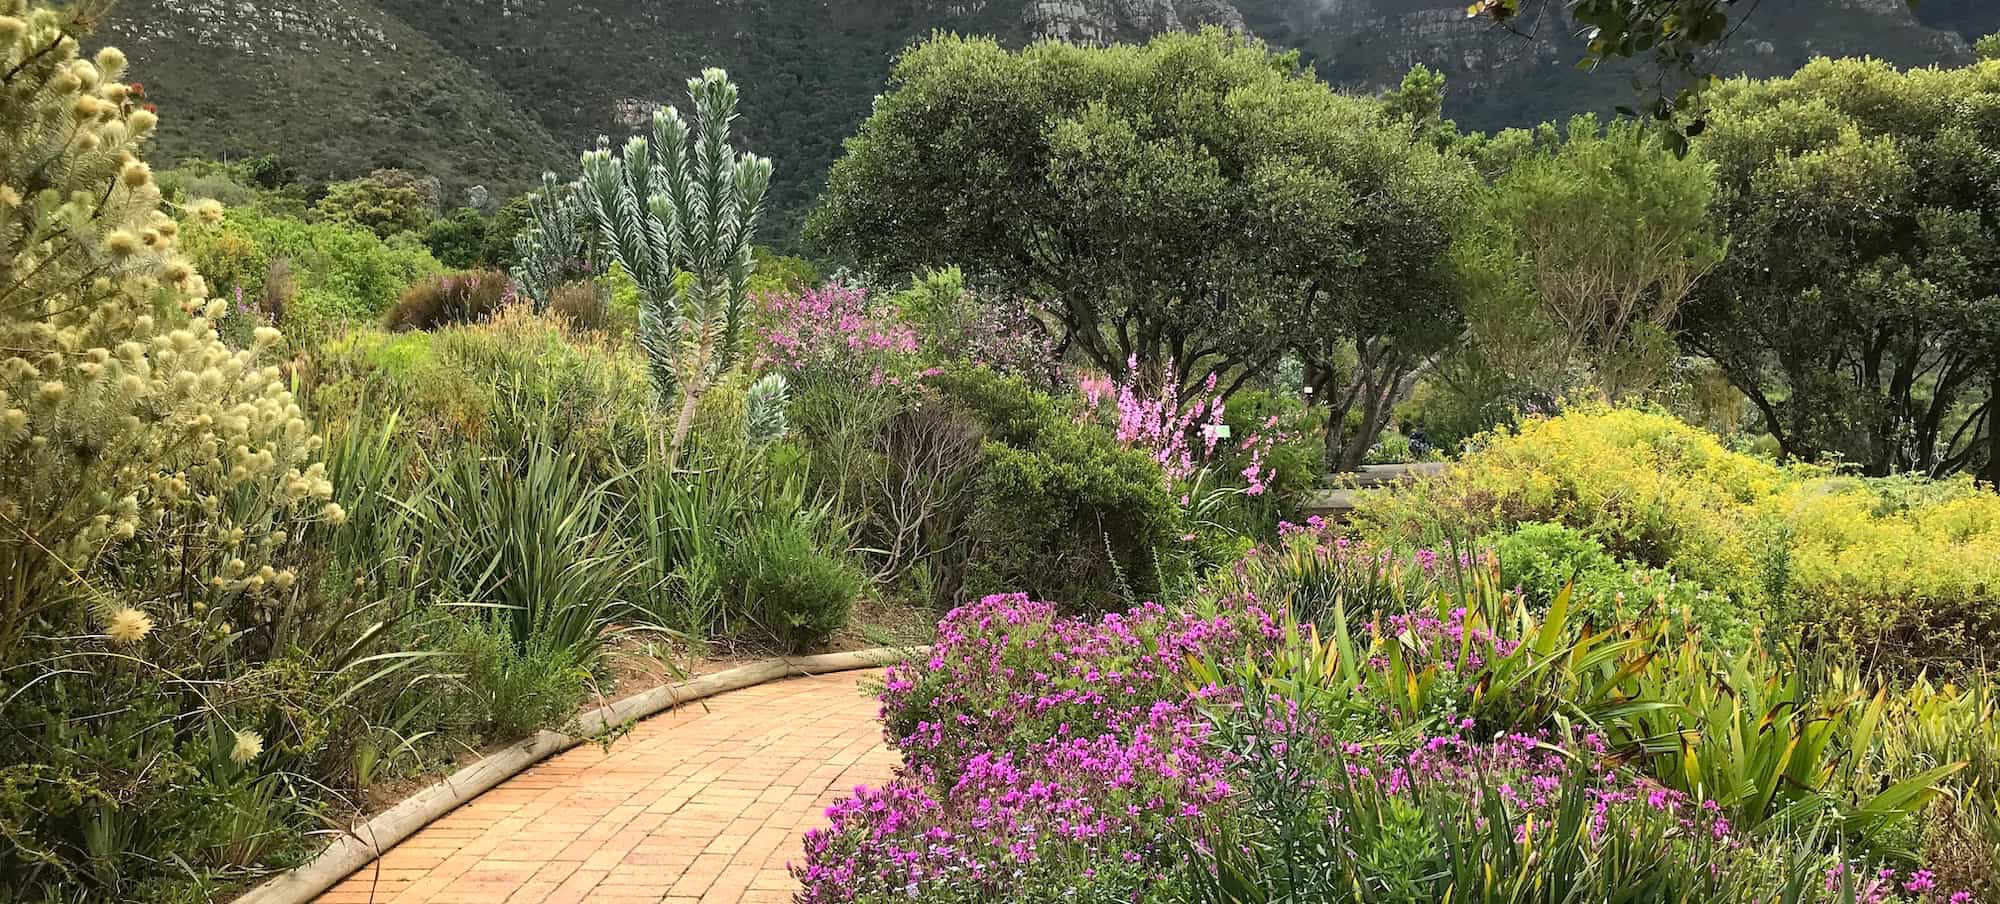 Garden Tours and Nature Tours